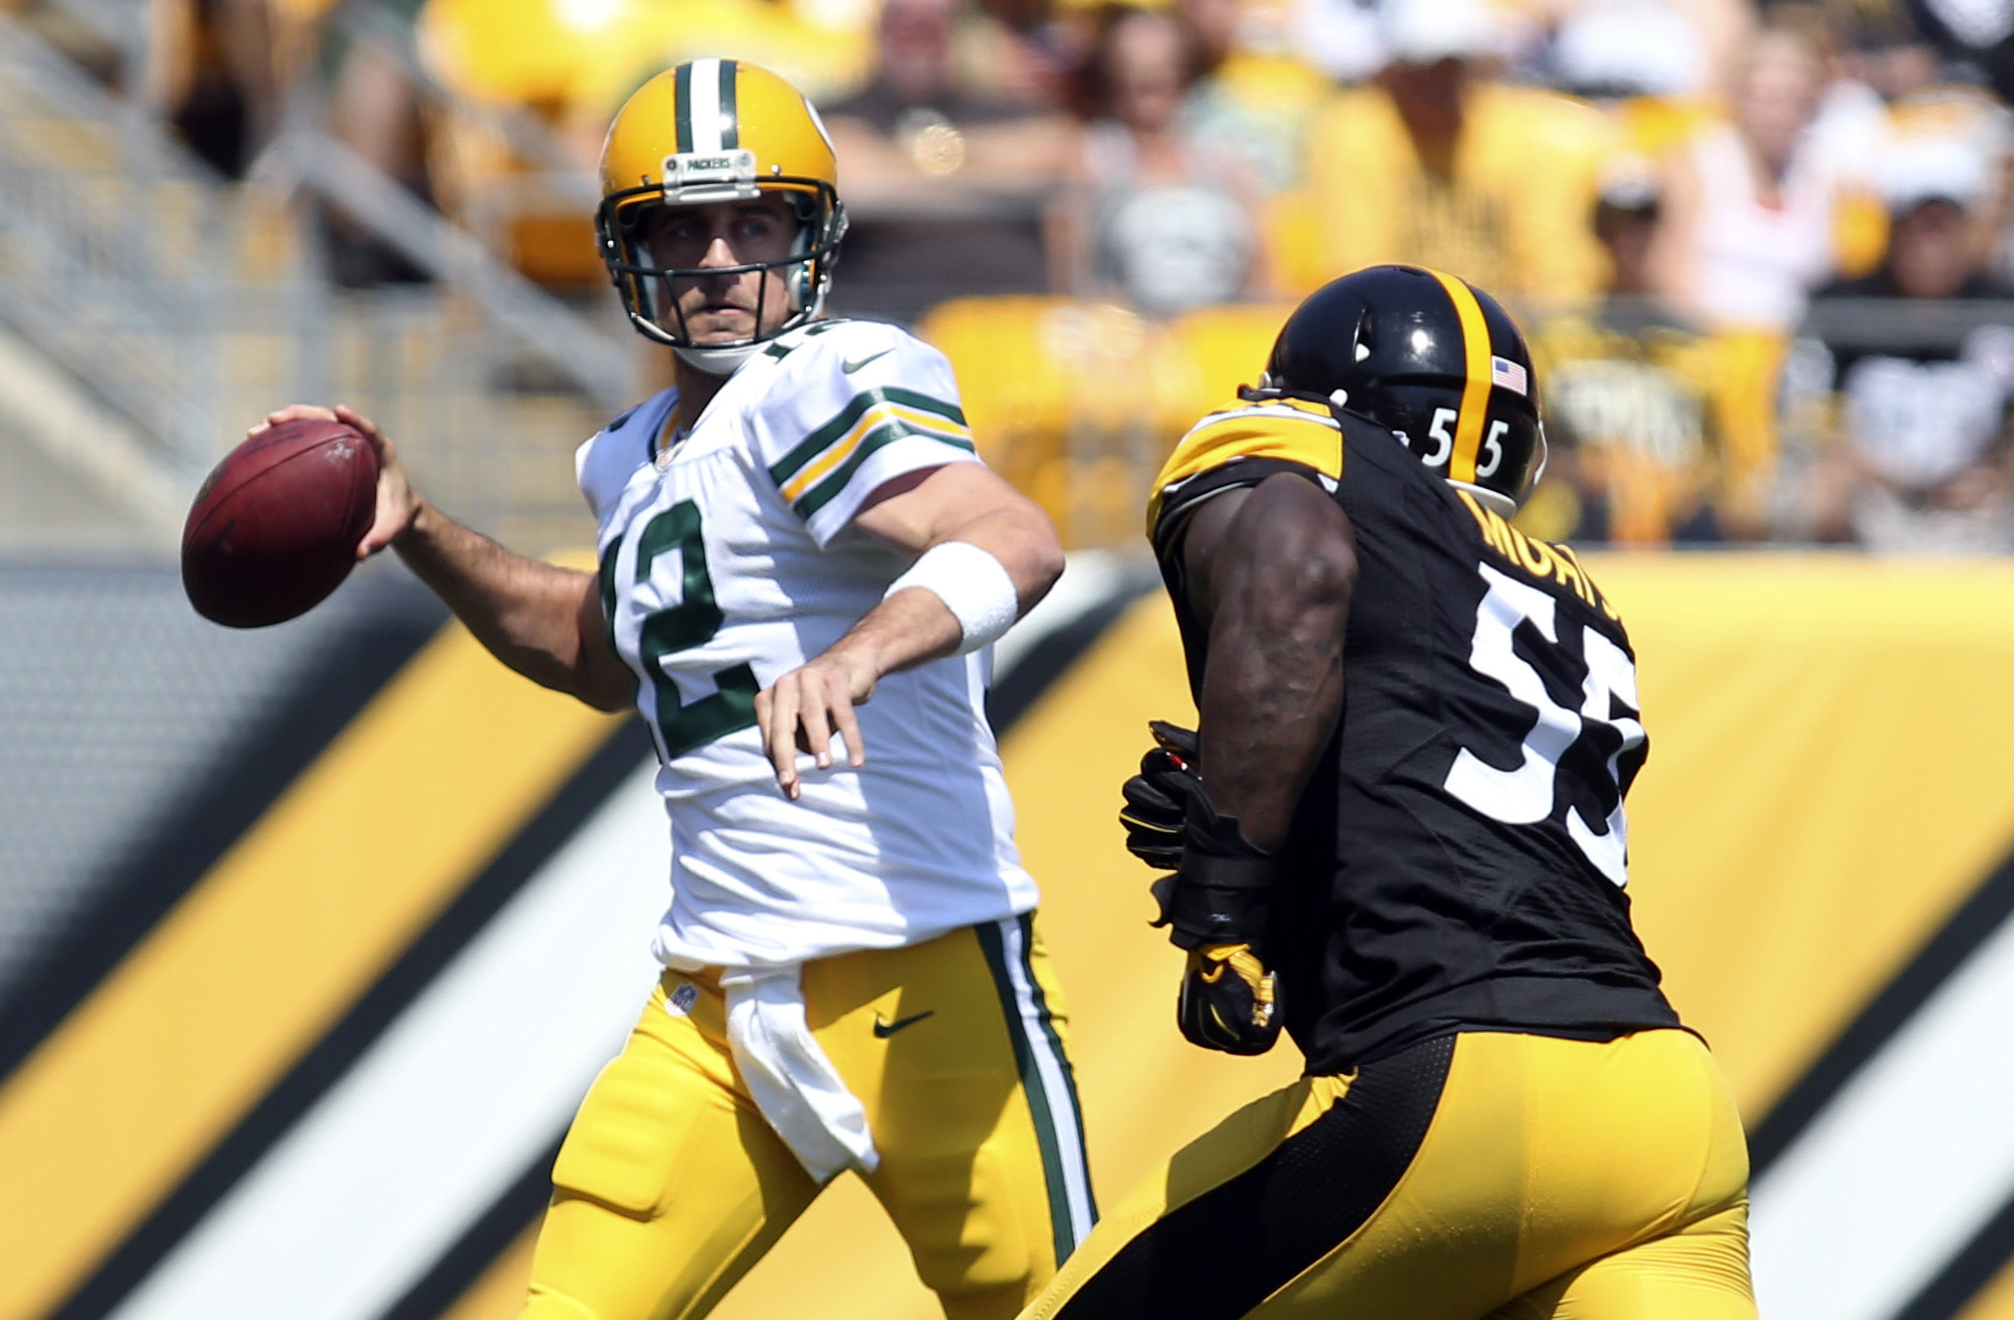 Packers release punter Jacob Schum, sign rookie WR Colby Pearson